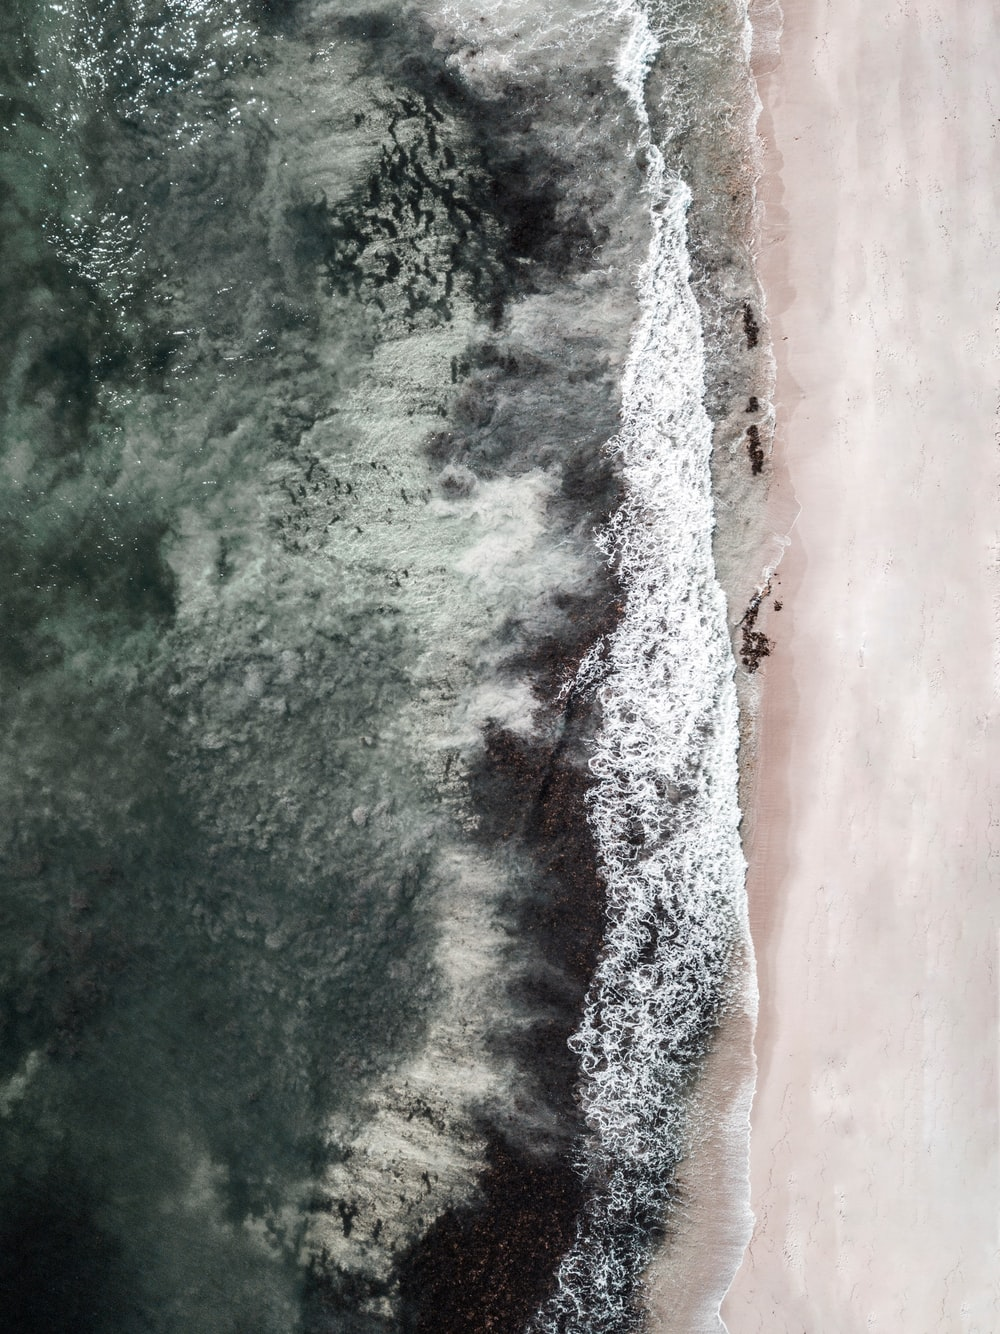 aerial view of crashing waves